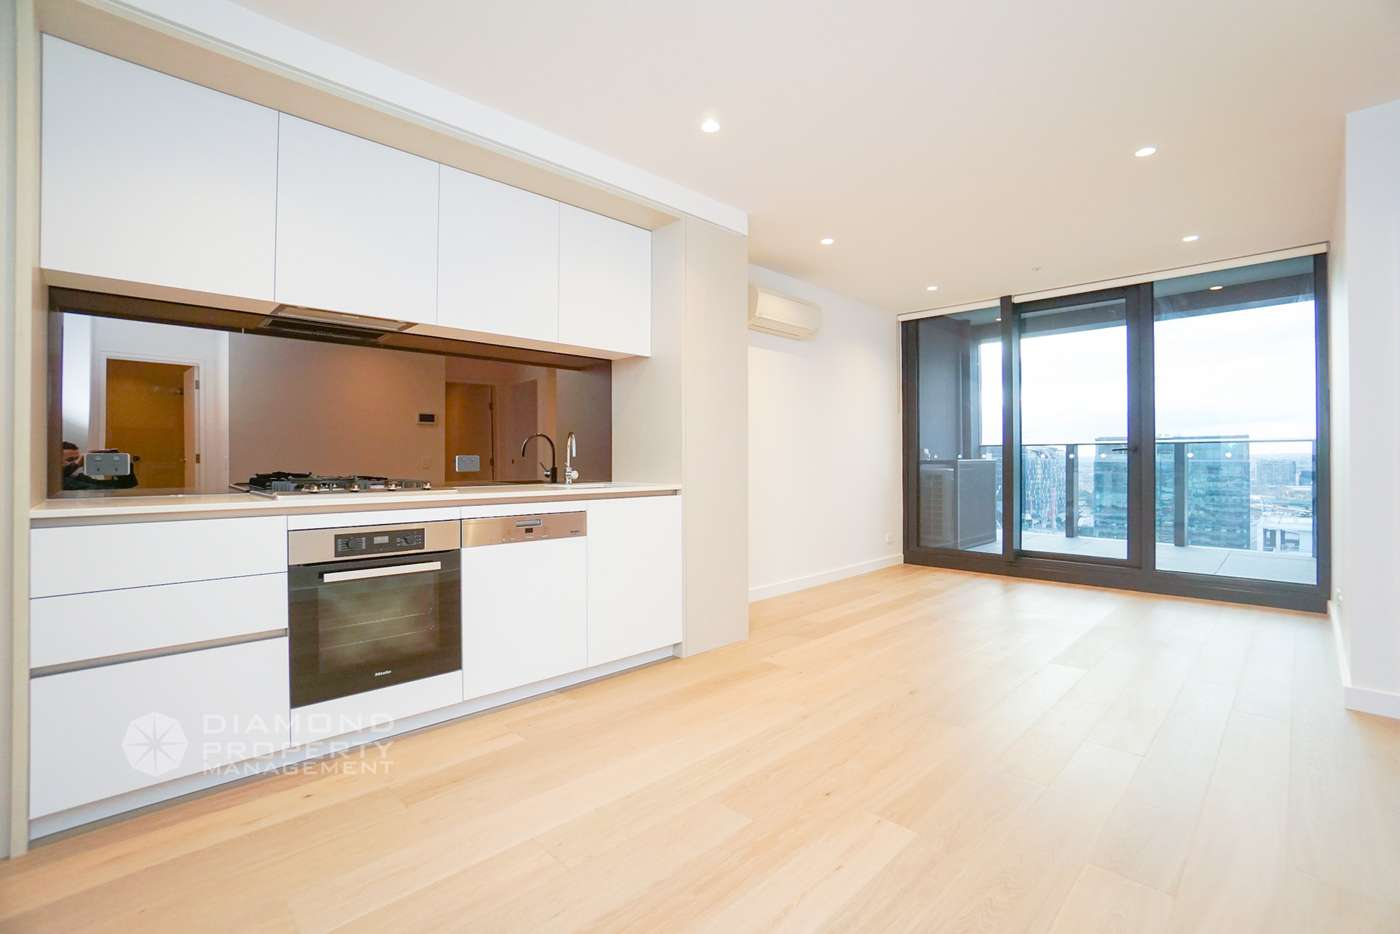 Main view of Homely apartment listing, 1616/628 Flinders Street, Docklands VIC 3008